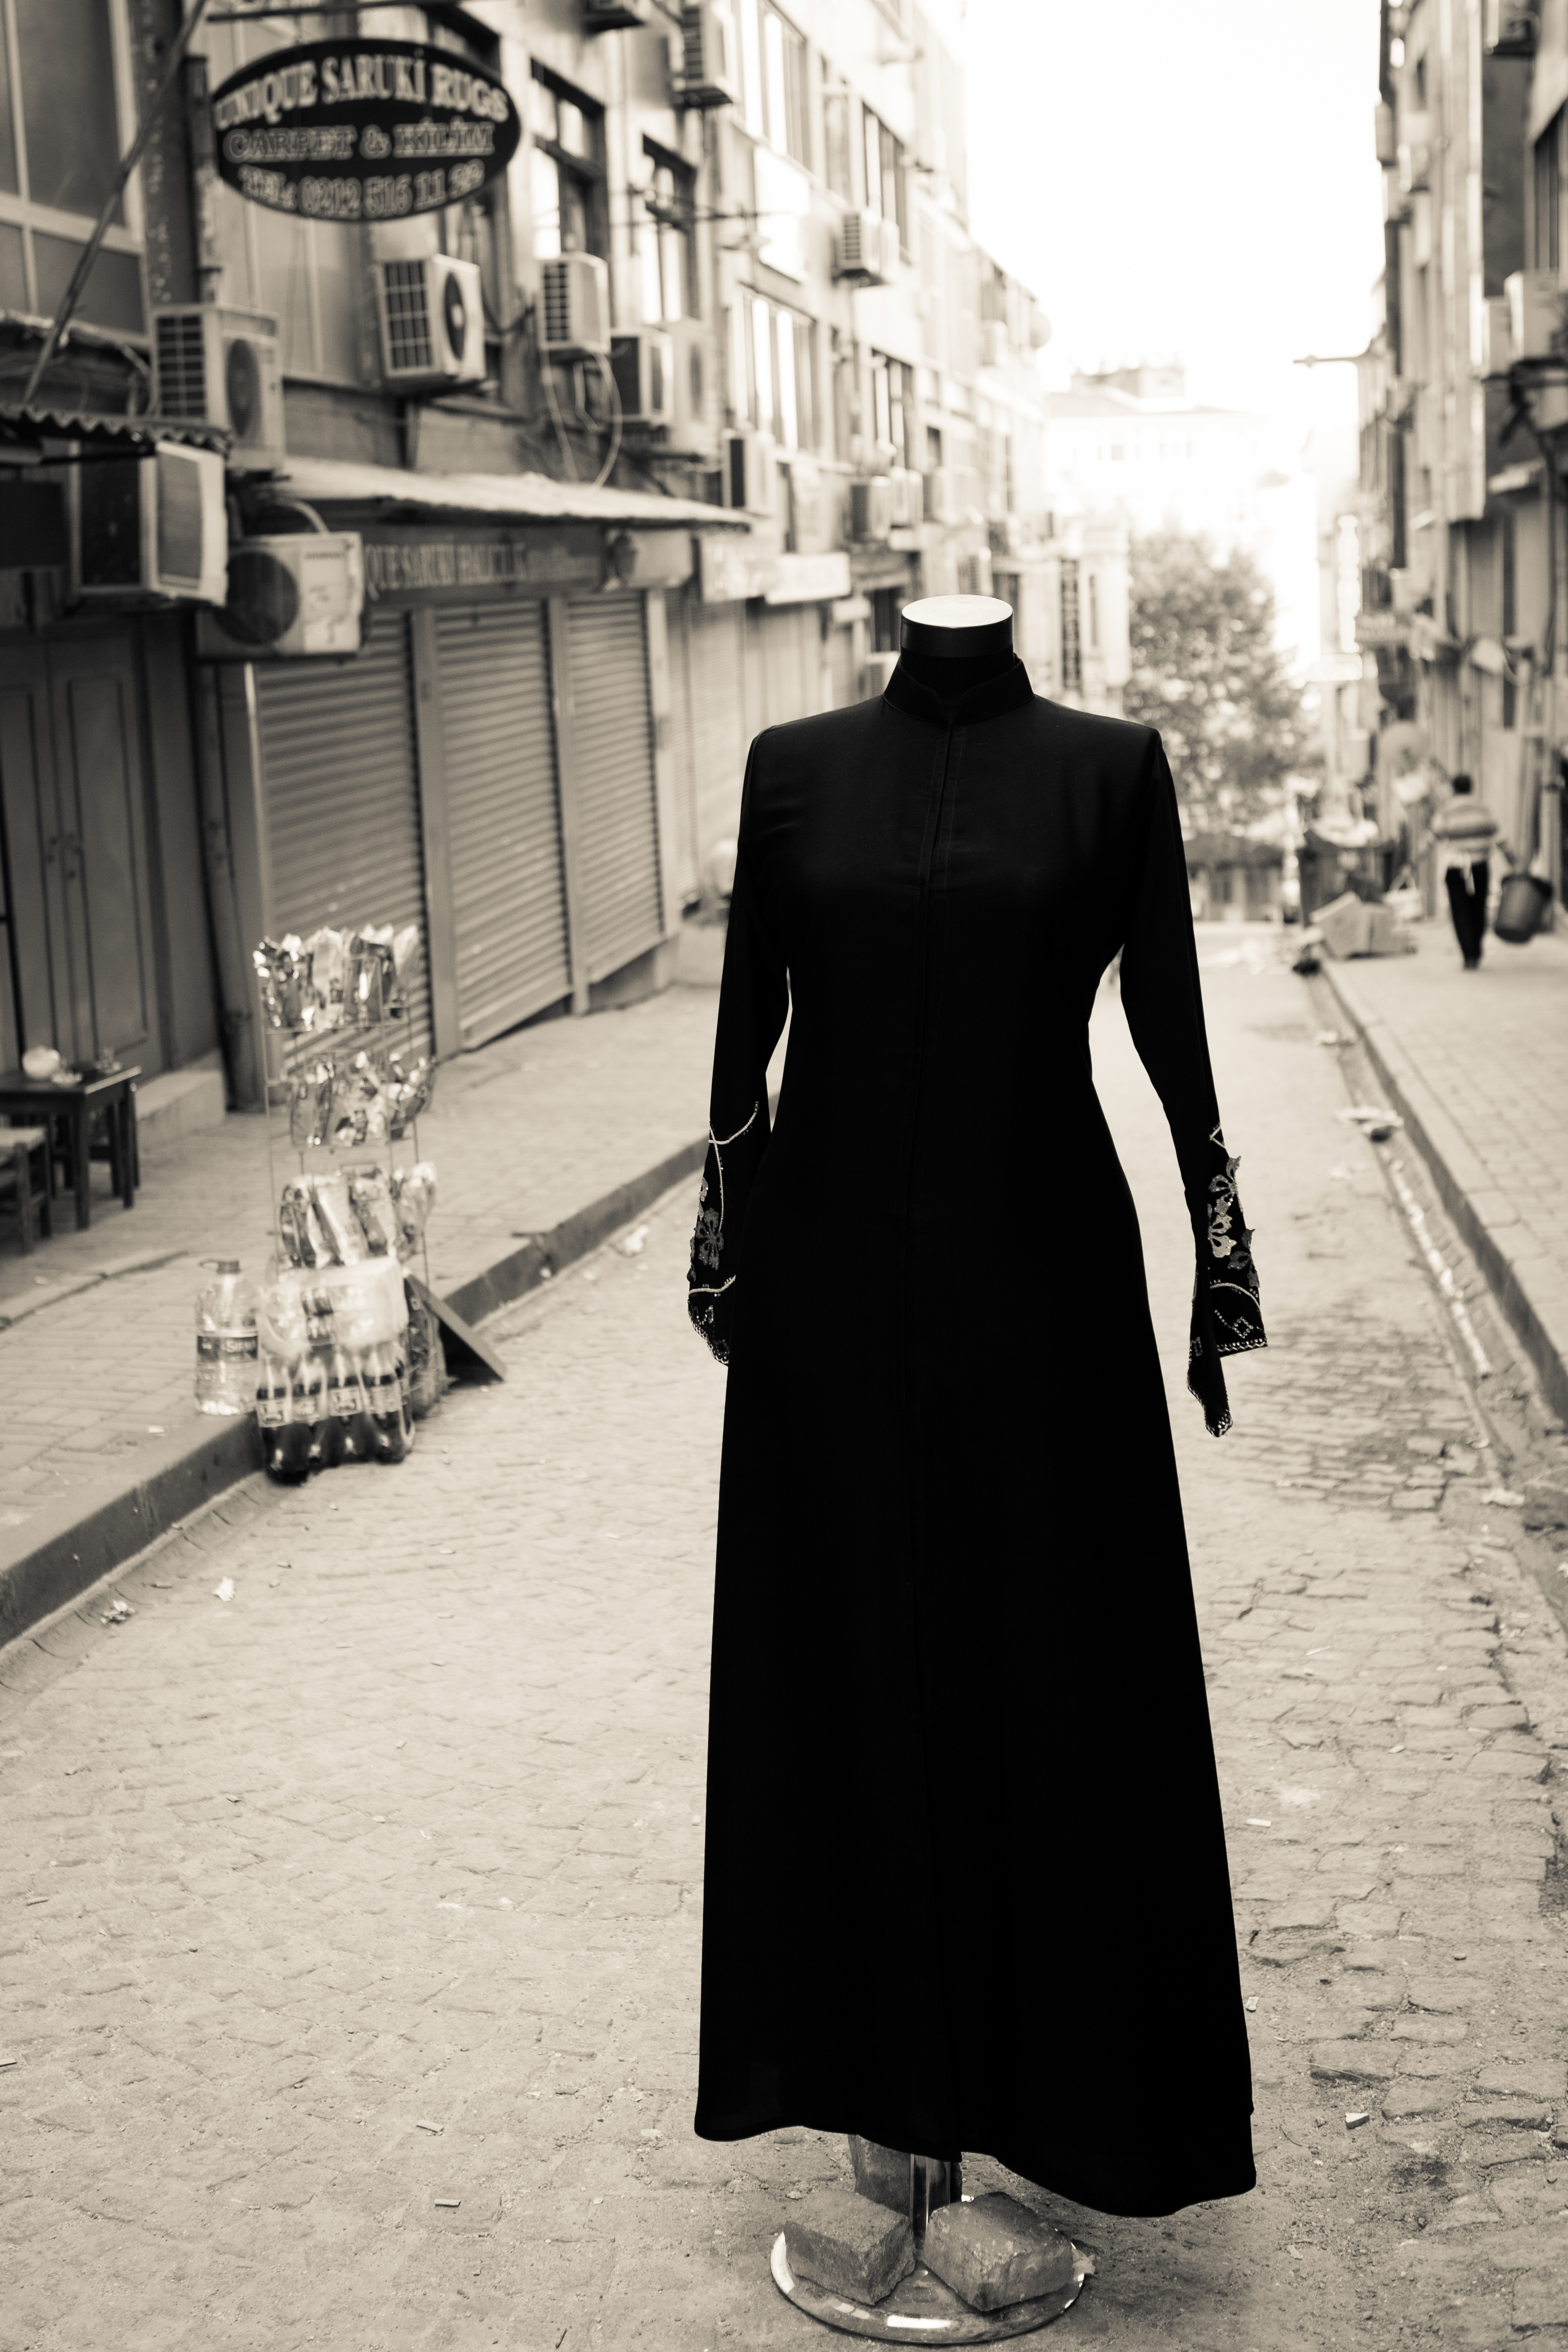 lady in black without head